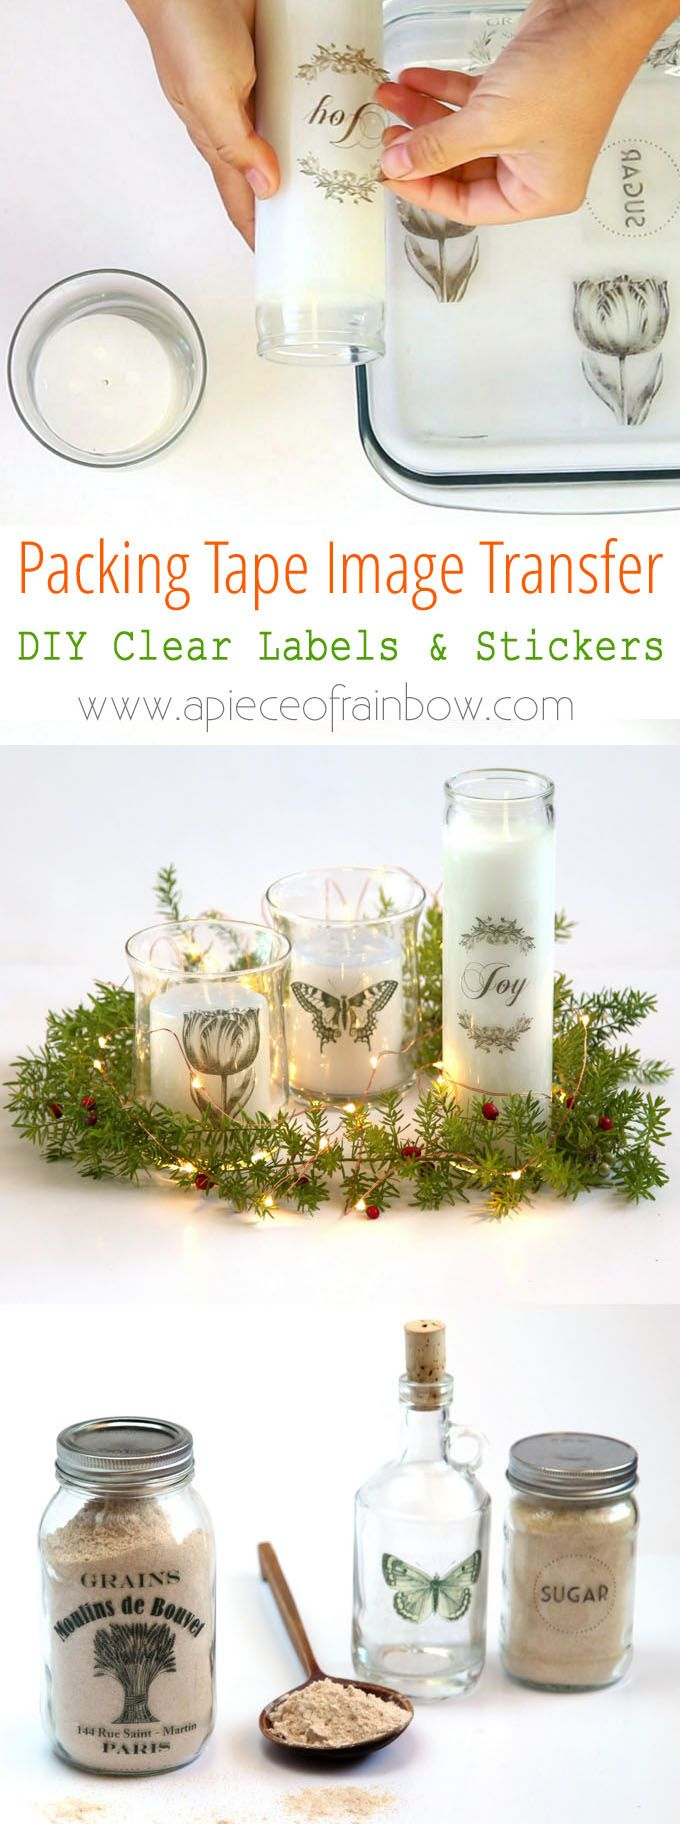 Make clear stickers using an easy packing tape image transfer method. Great for pantry labels, gift tags, custom designs on glass, wood or metal objects!